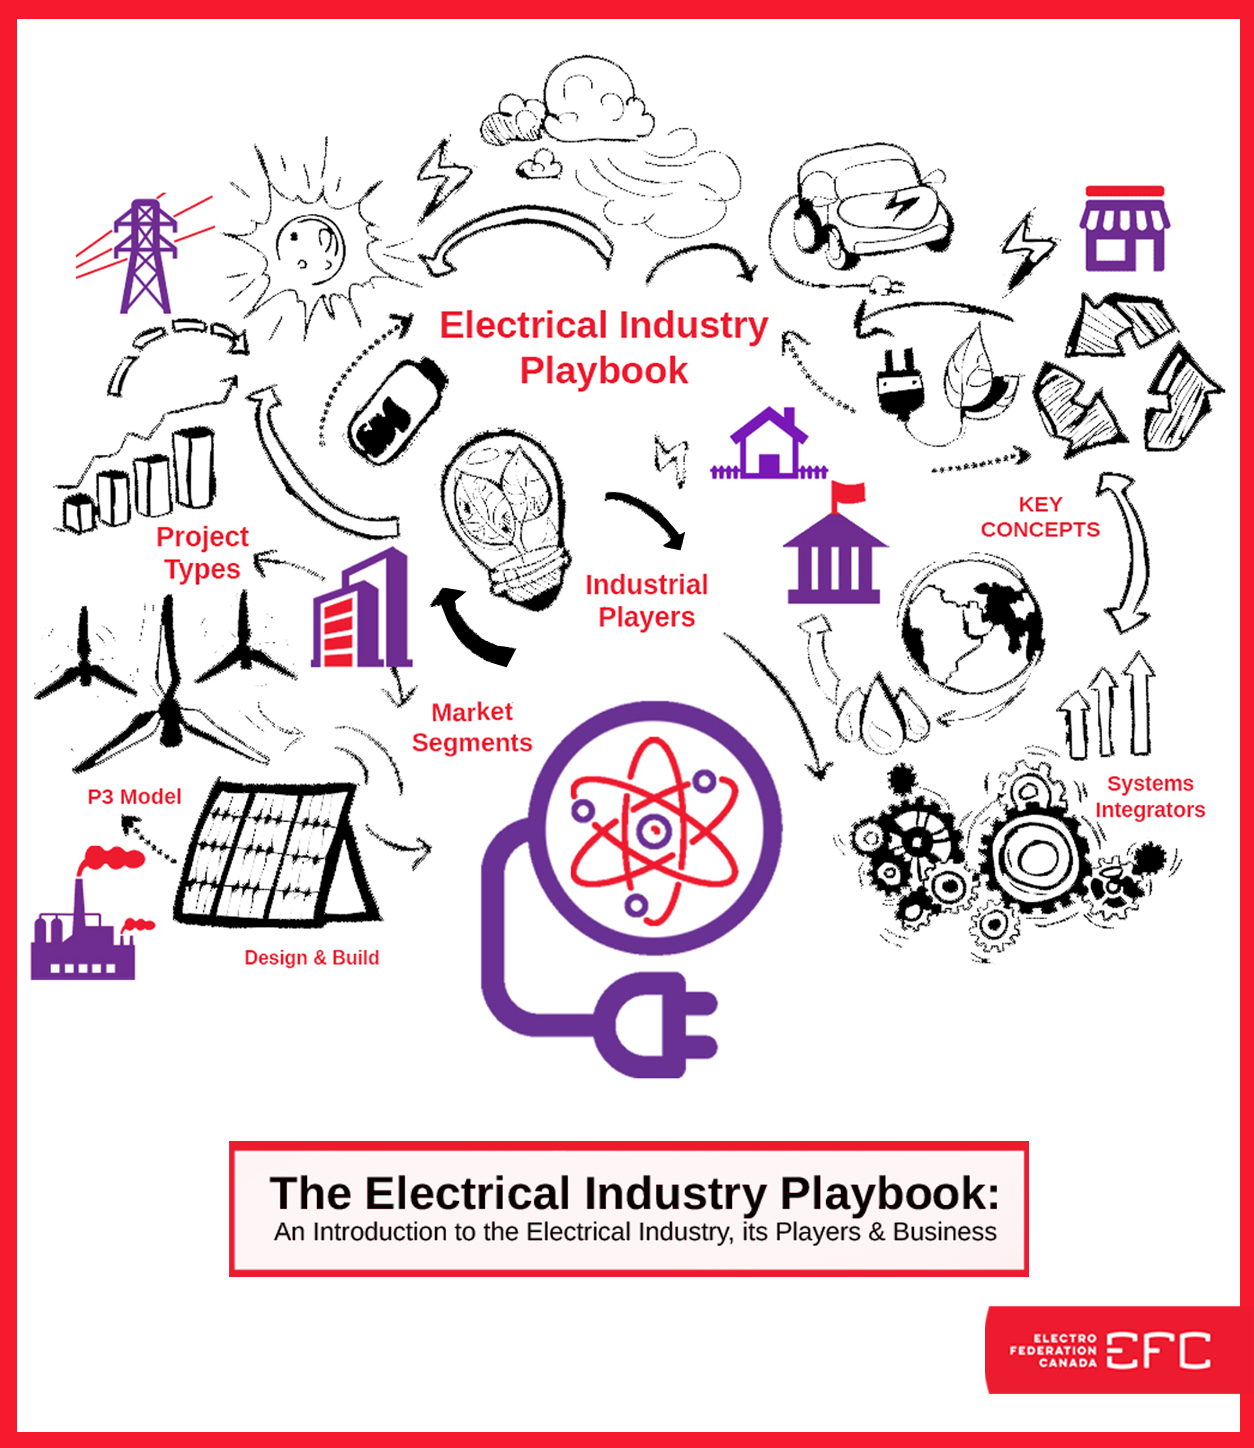 Electrical Industry Playbook